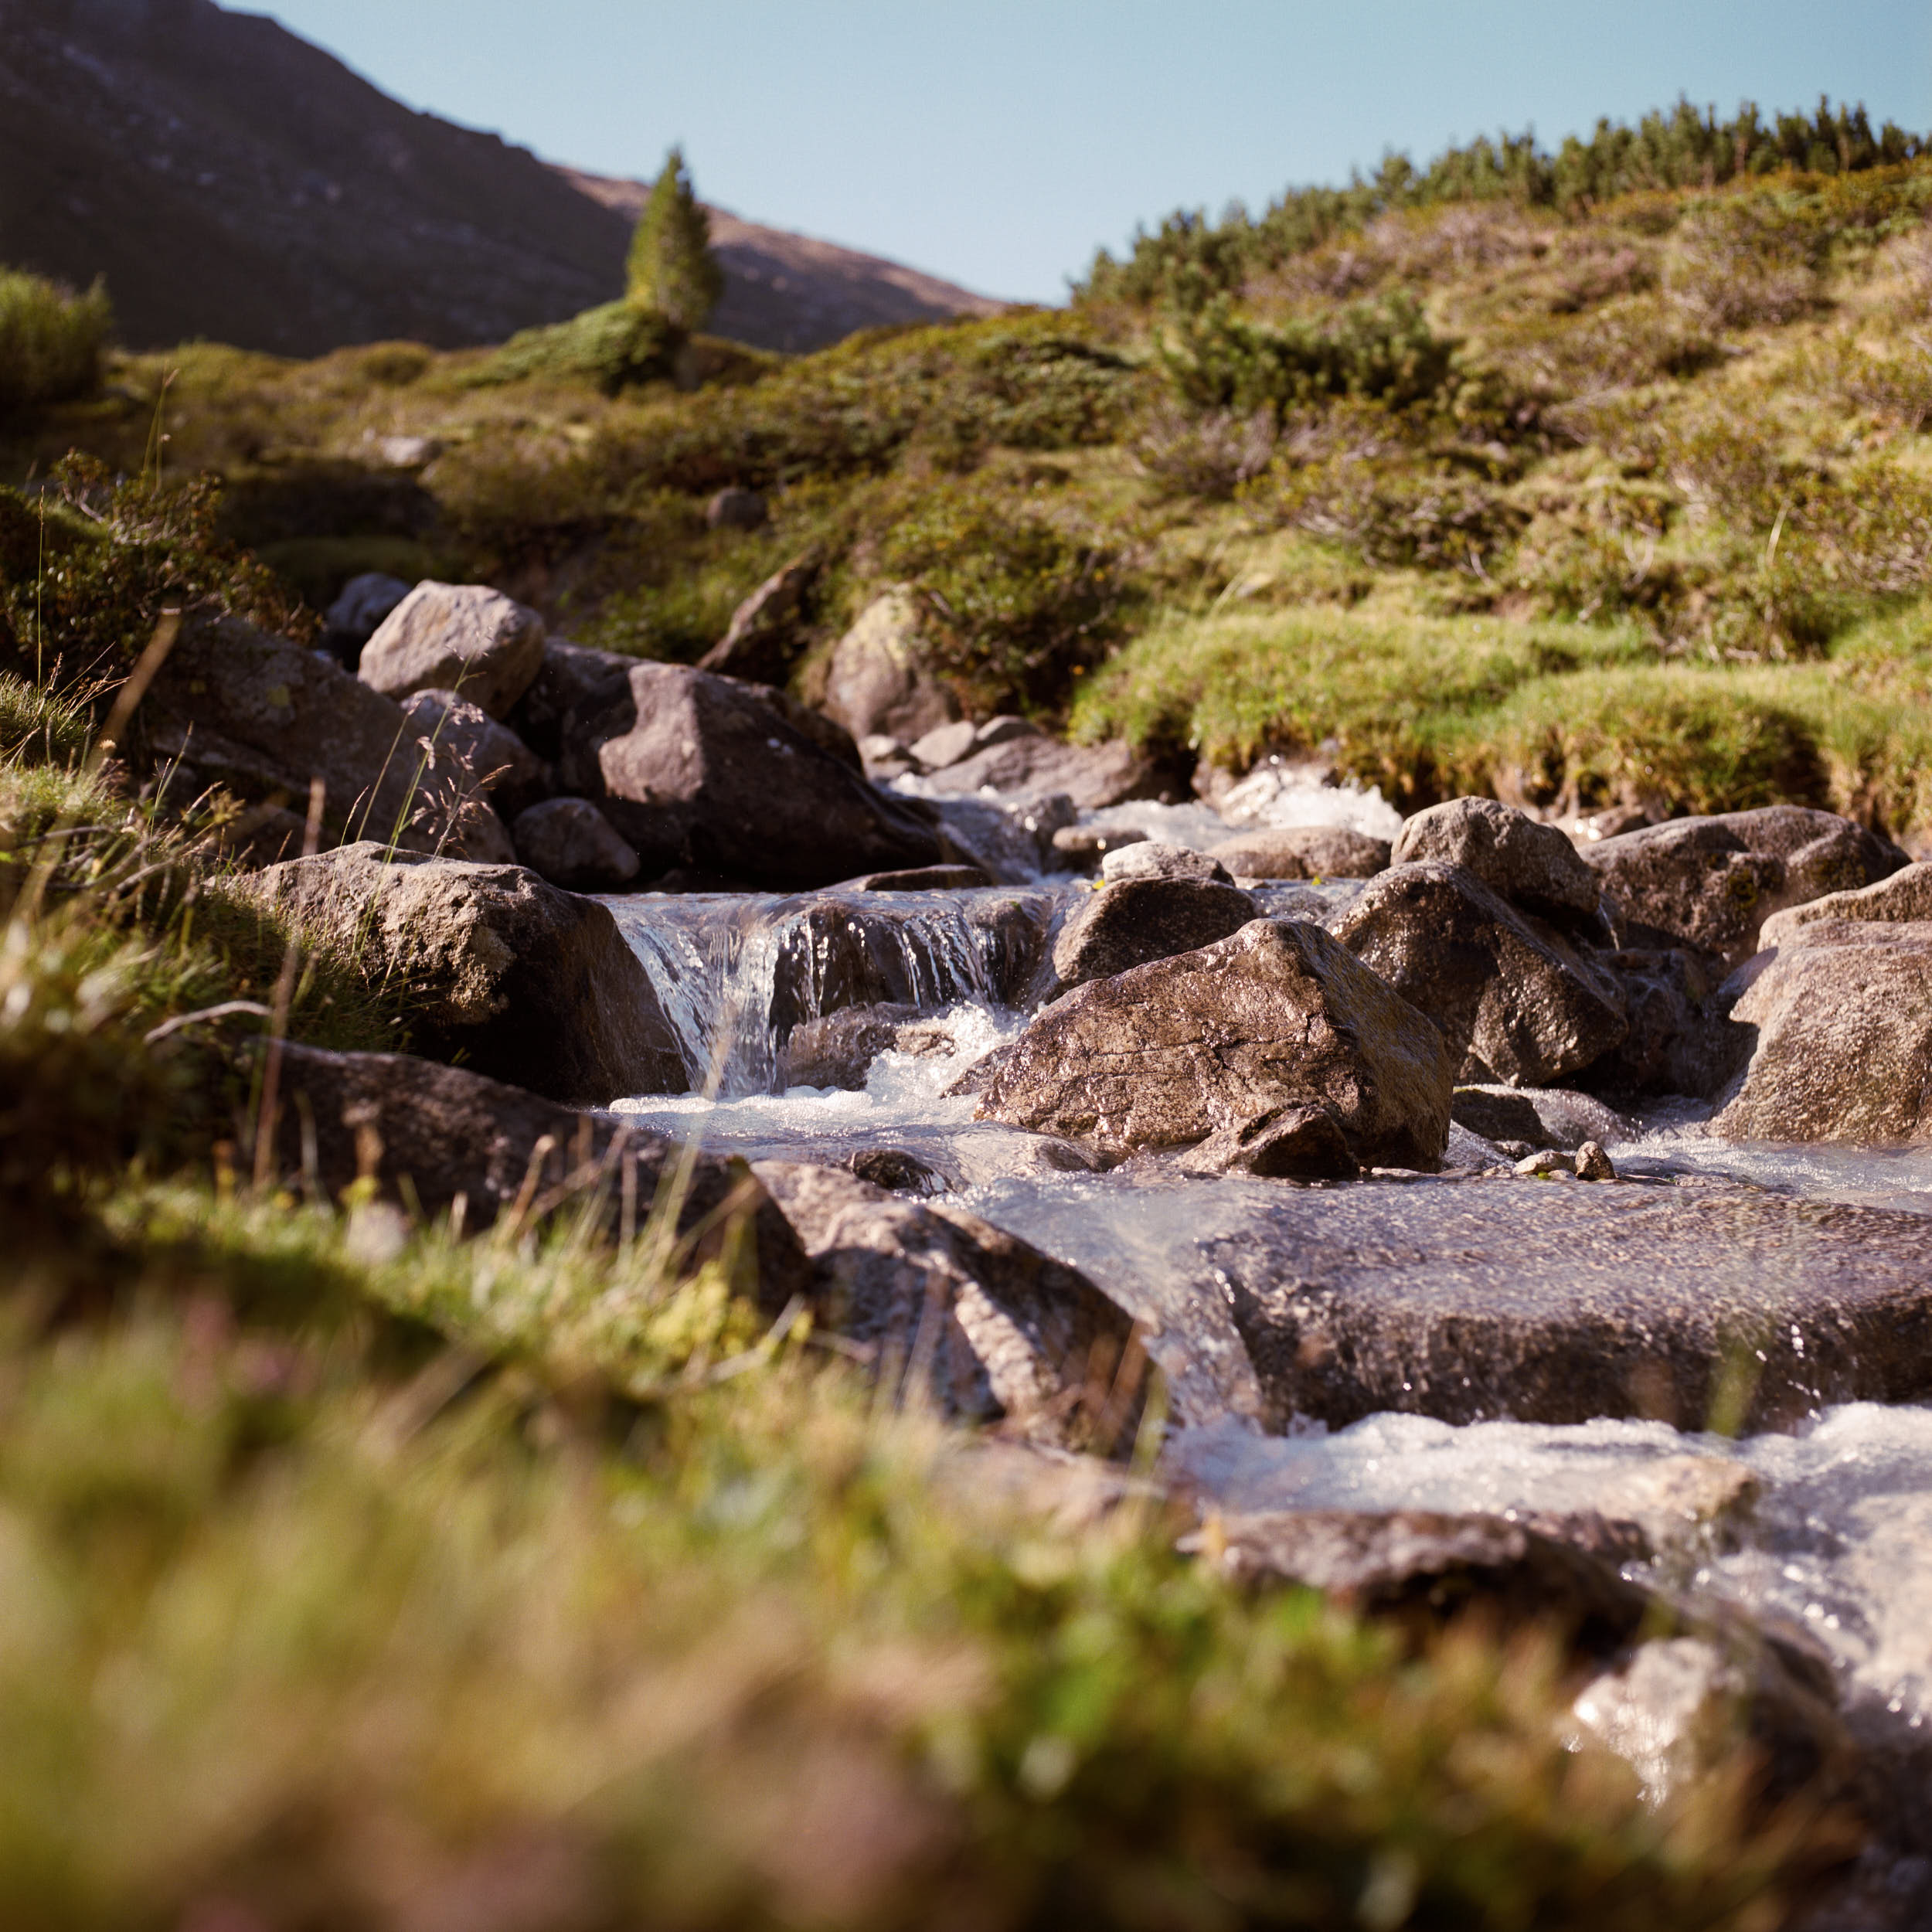 Colour film landscape photography: mountain stream with big rocks on an alpine mountainside.